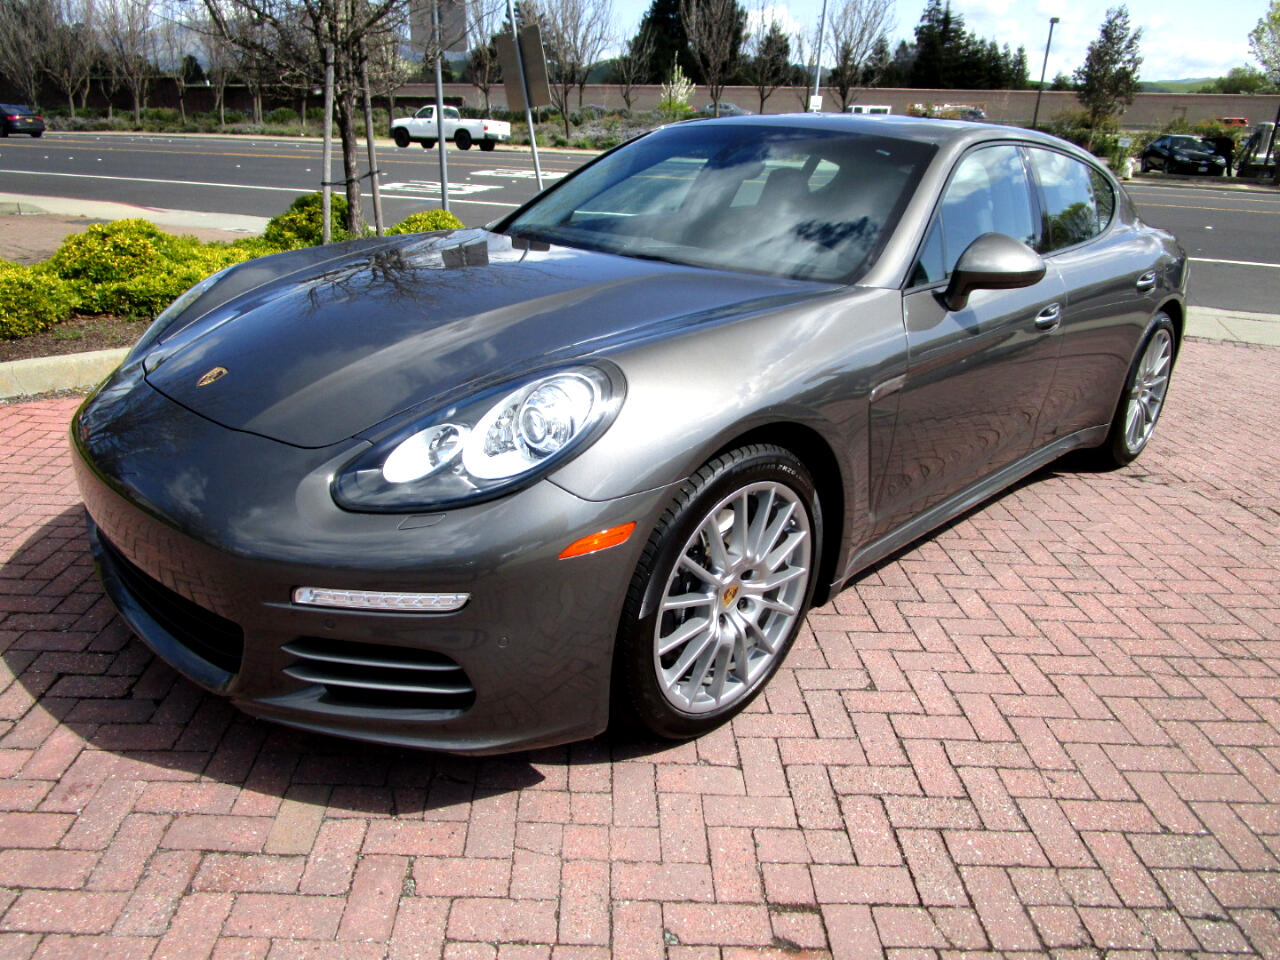 2015 Porsche Panamera AWD*PREM PLUS*HEAT/AC SEATS/REAR HEAT SEATS*BLIND